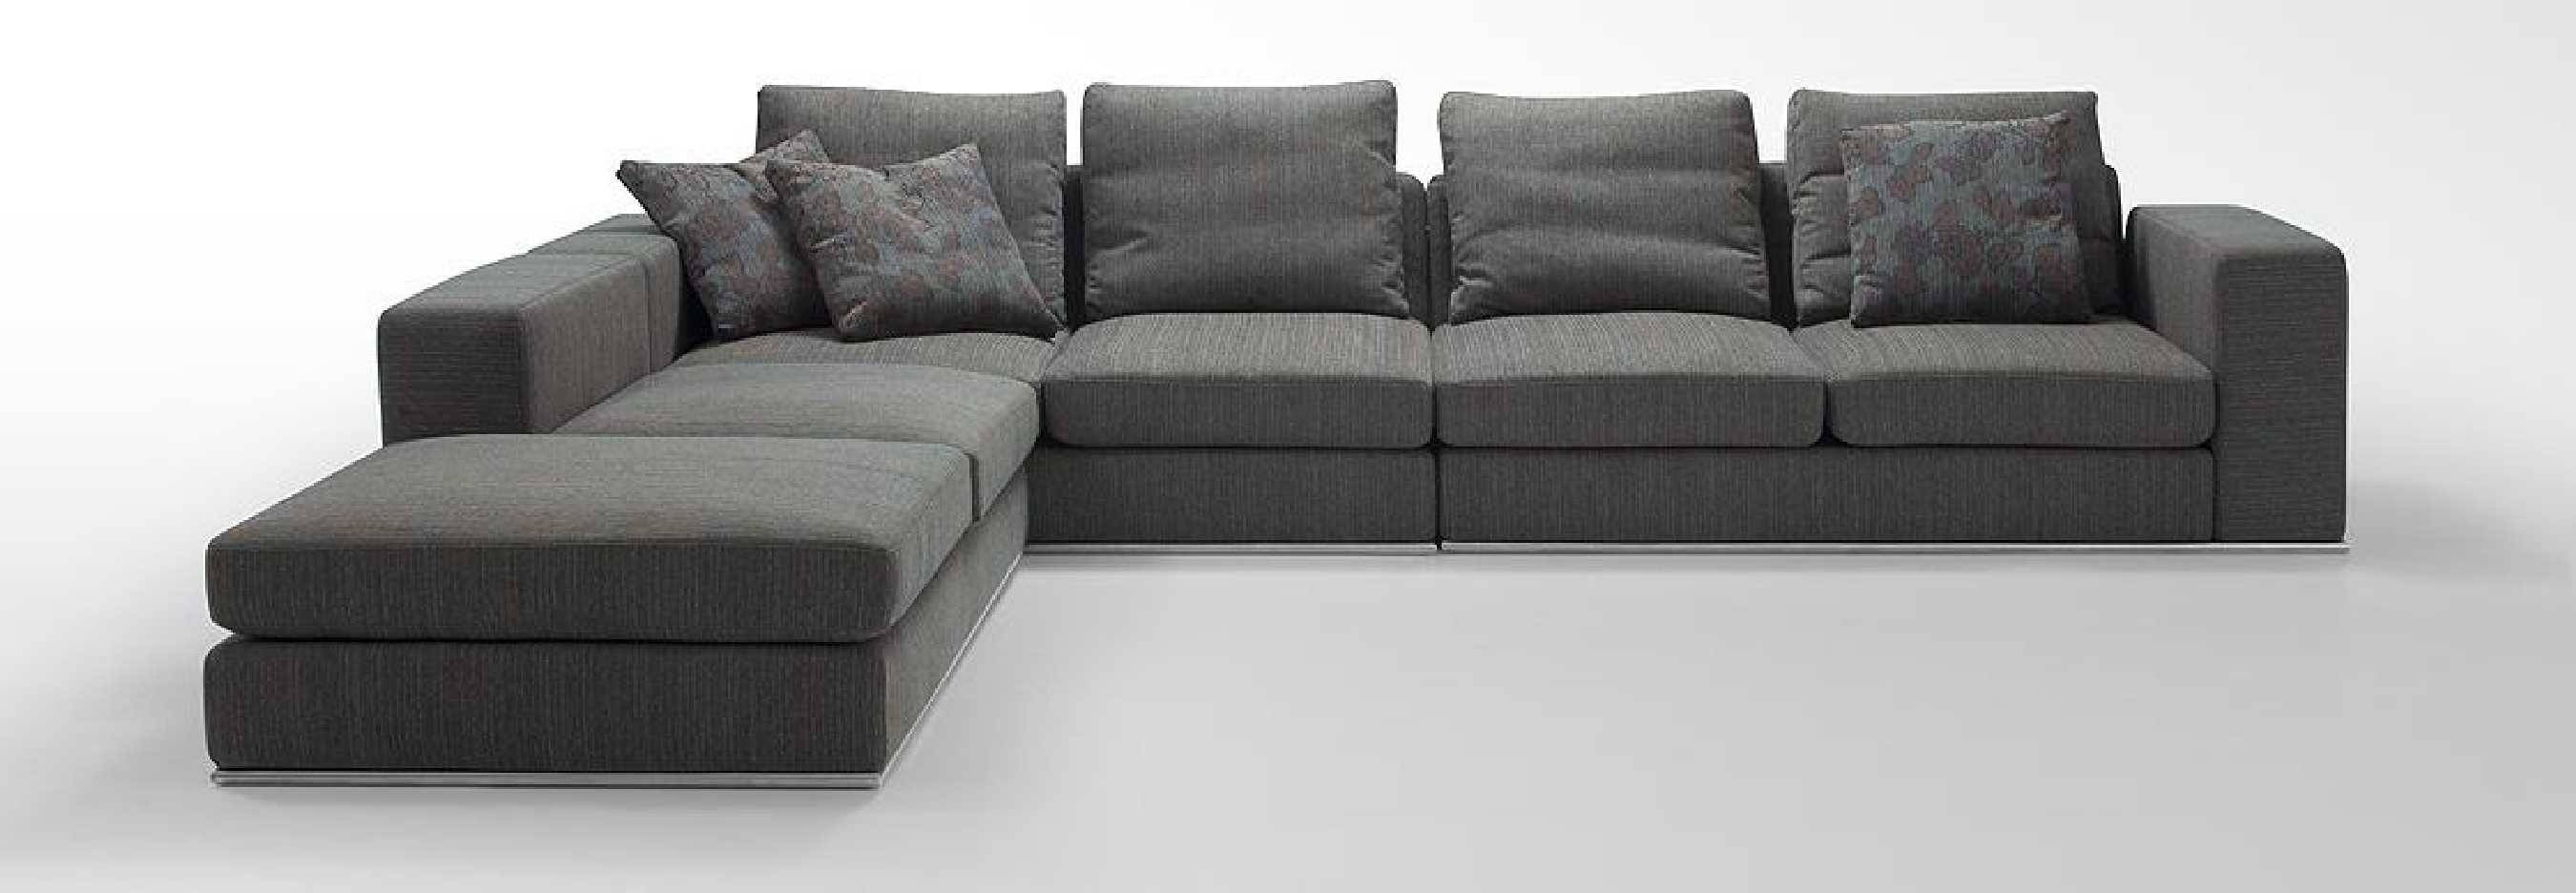 Furniture: Amusing Furniture Decorated L Shaped Sleeper Sofa For in Leather L Shaped Sectional Sofas (Image 8 of 30)